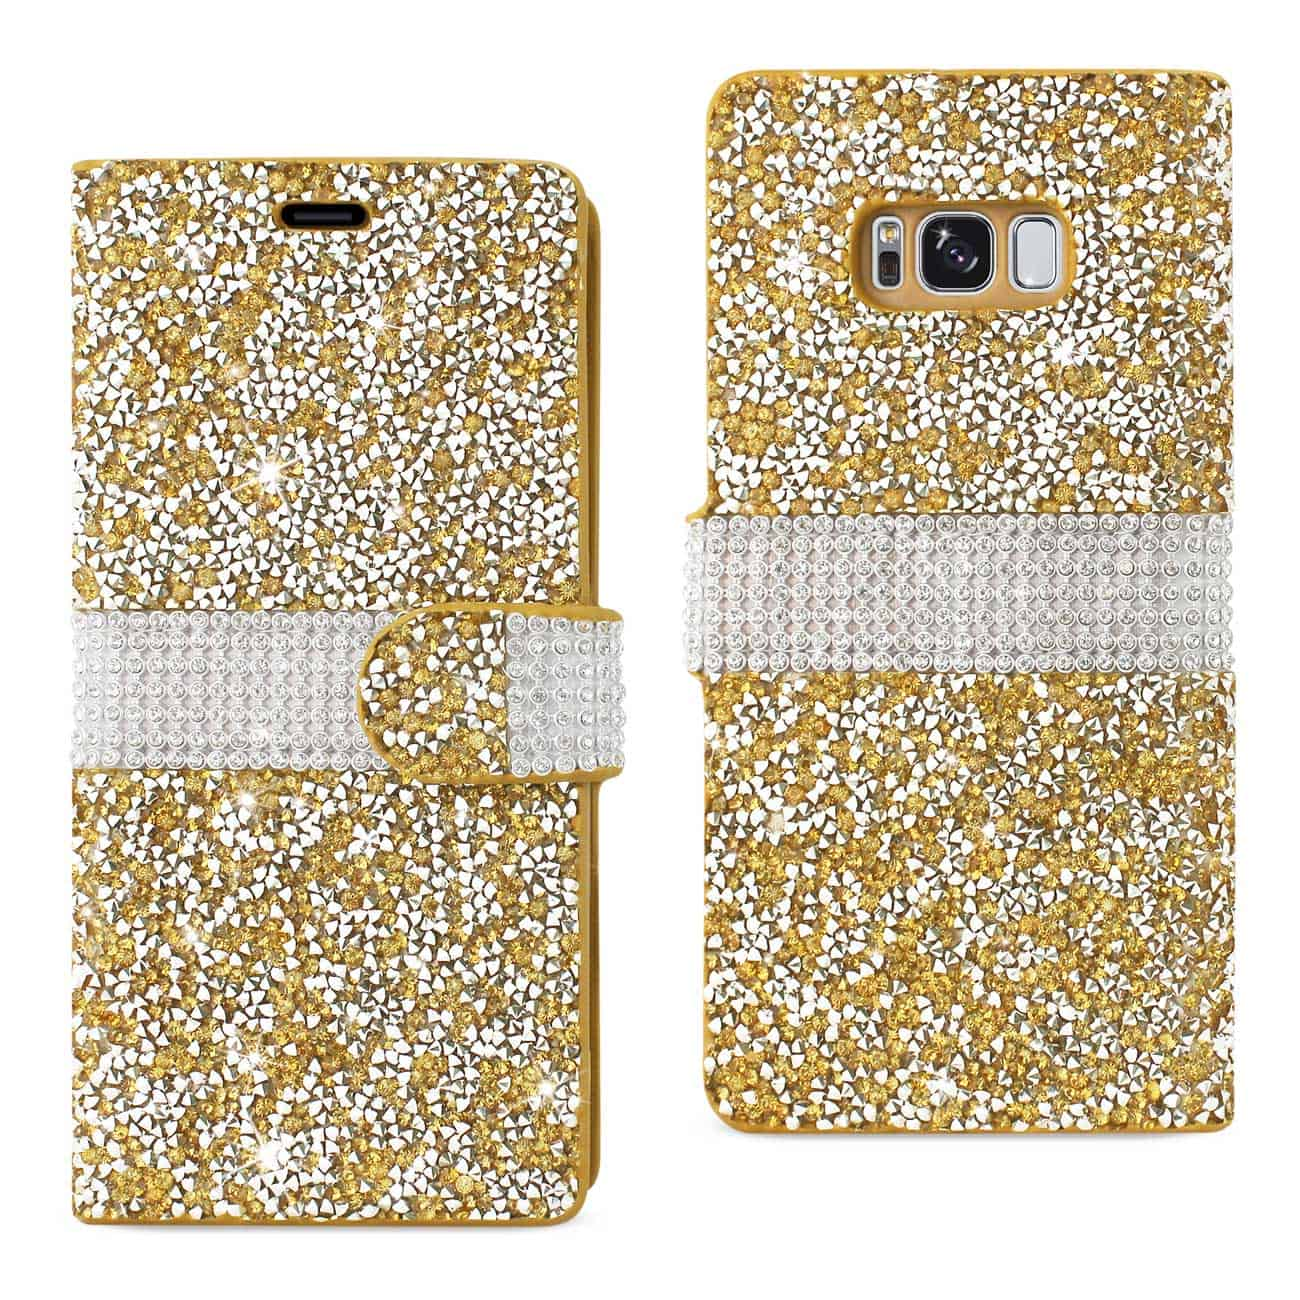 SAMSUNG GALAXY S8 EDGE/ S8 PLUS DIAMOND RHINESTONE WALLET CASE IN GOLD